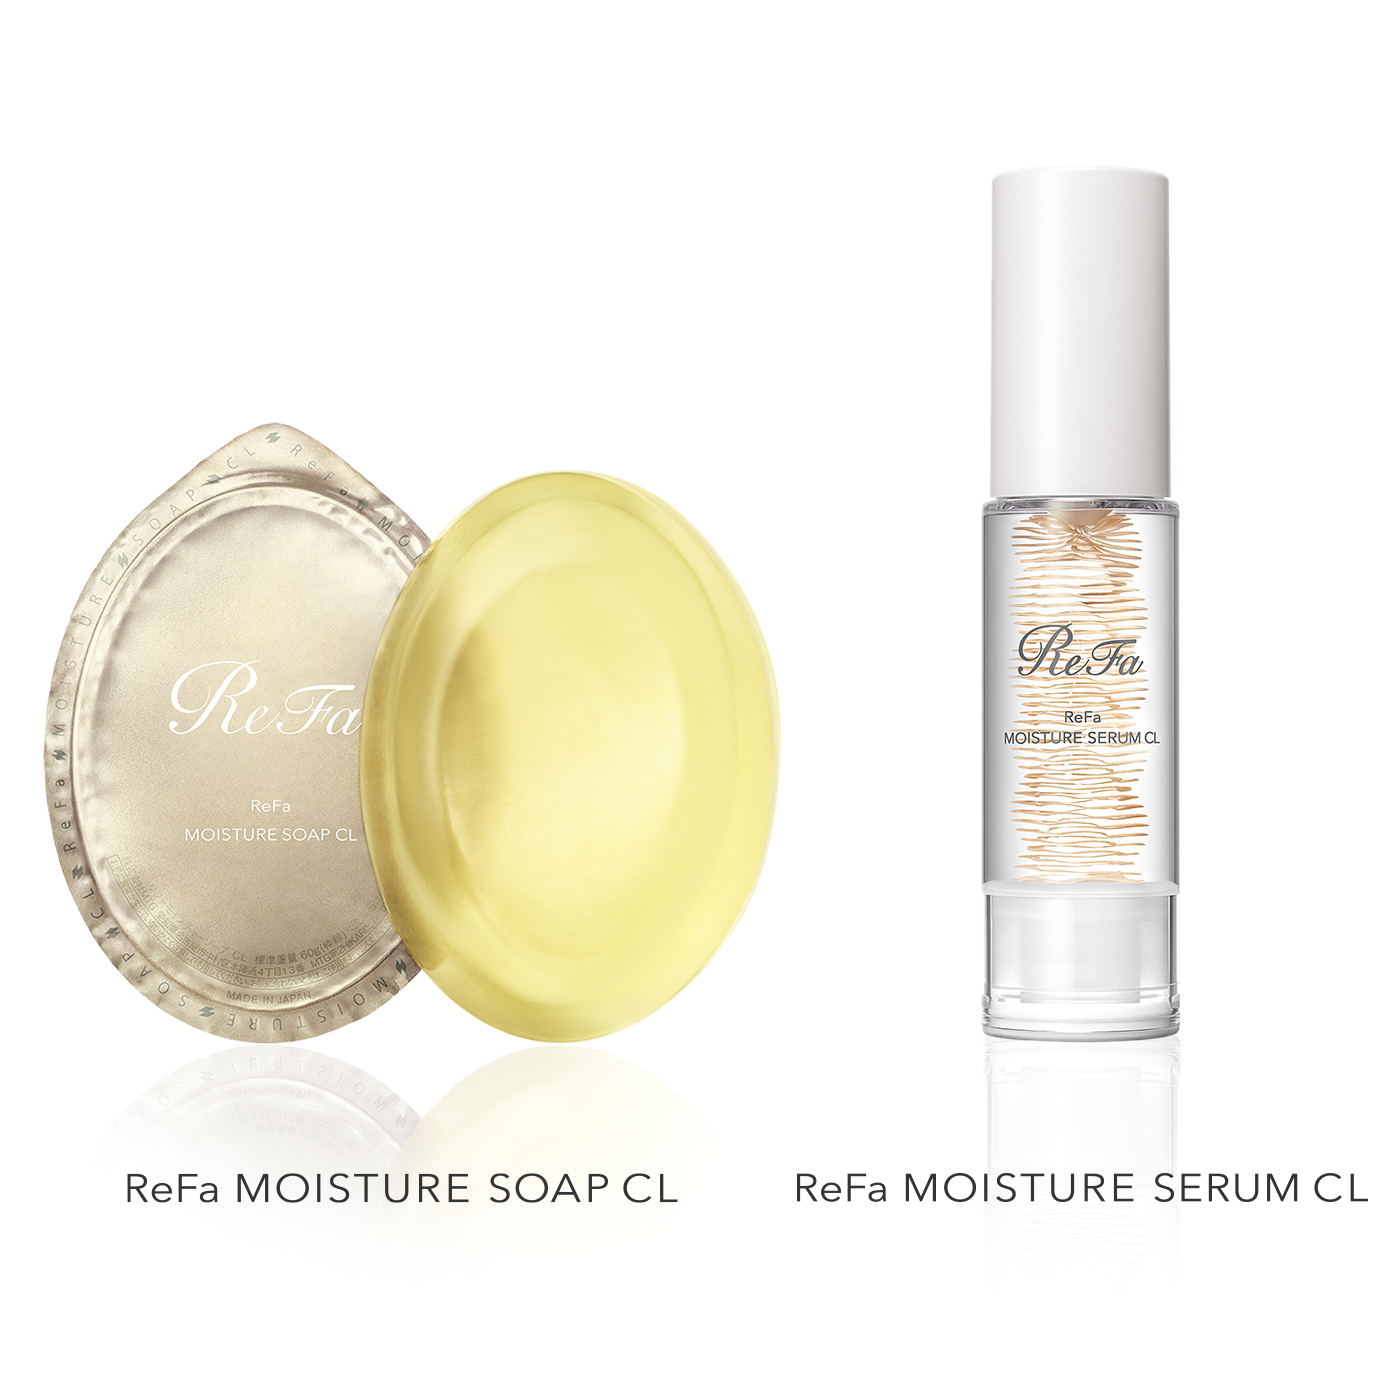 Keeping your skin balanced and leading to a beautiful, supple glow: ReFa MOISTURE SOAP CL and ReFa MOISTURE SERUM CL, on sale now